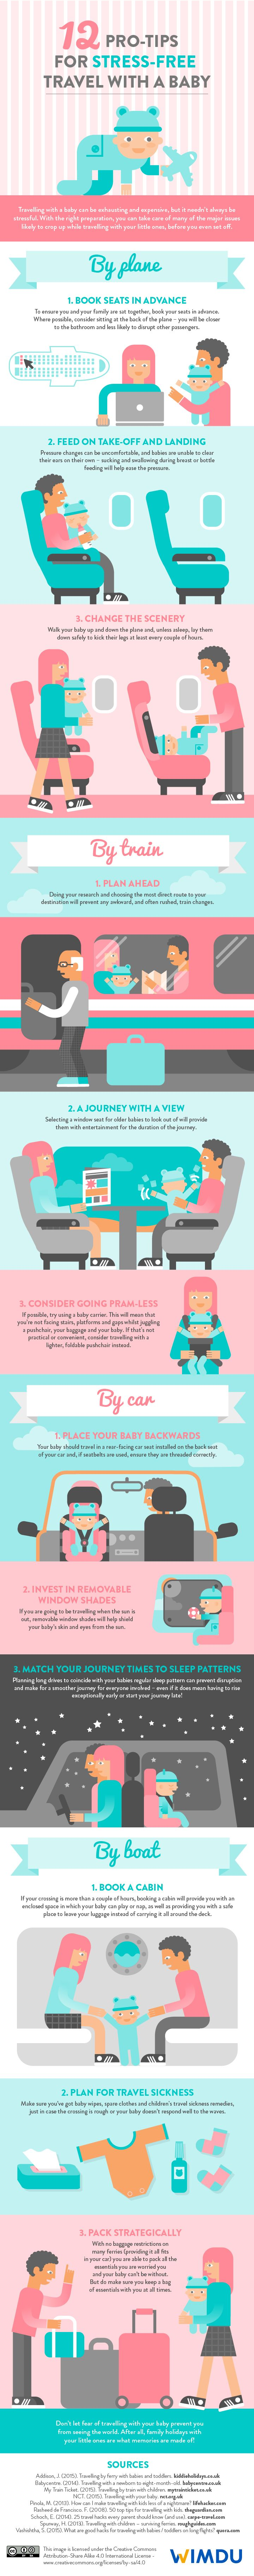 Infographic: 12 pro tips for stress-free travel with a baby - Matador Network